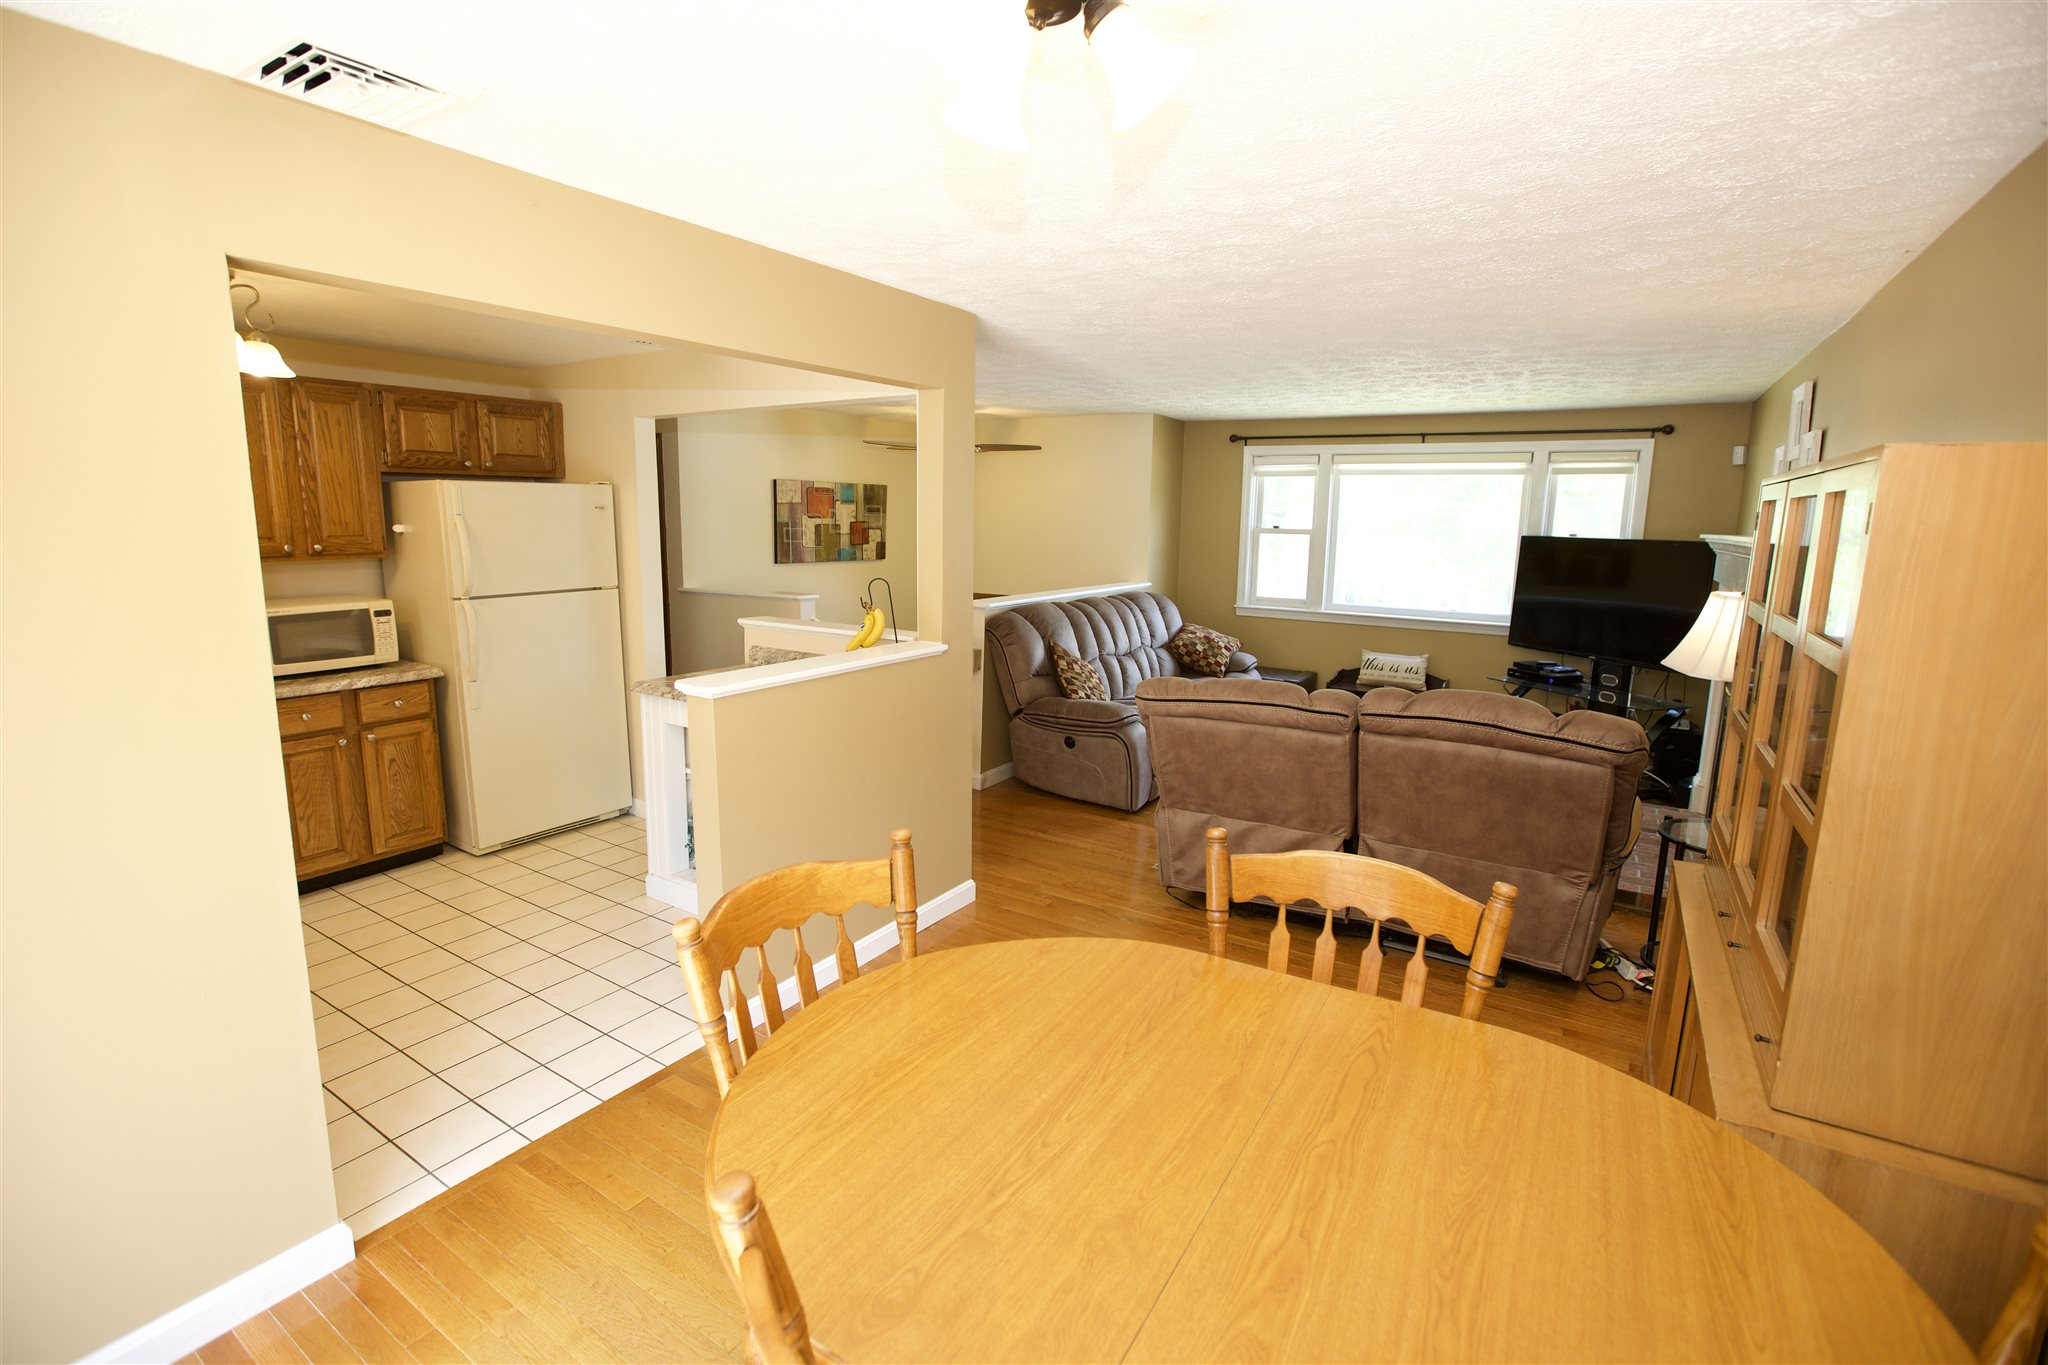 315 Blevens Drive, Manchester NH 03104   MLS #   $295,000 ...